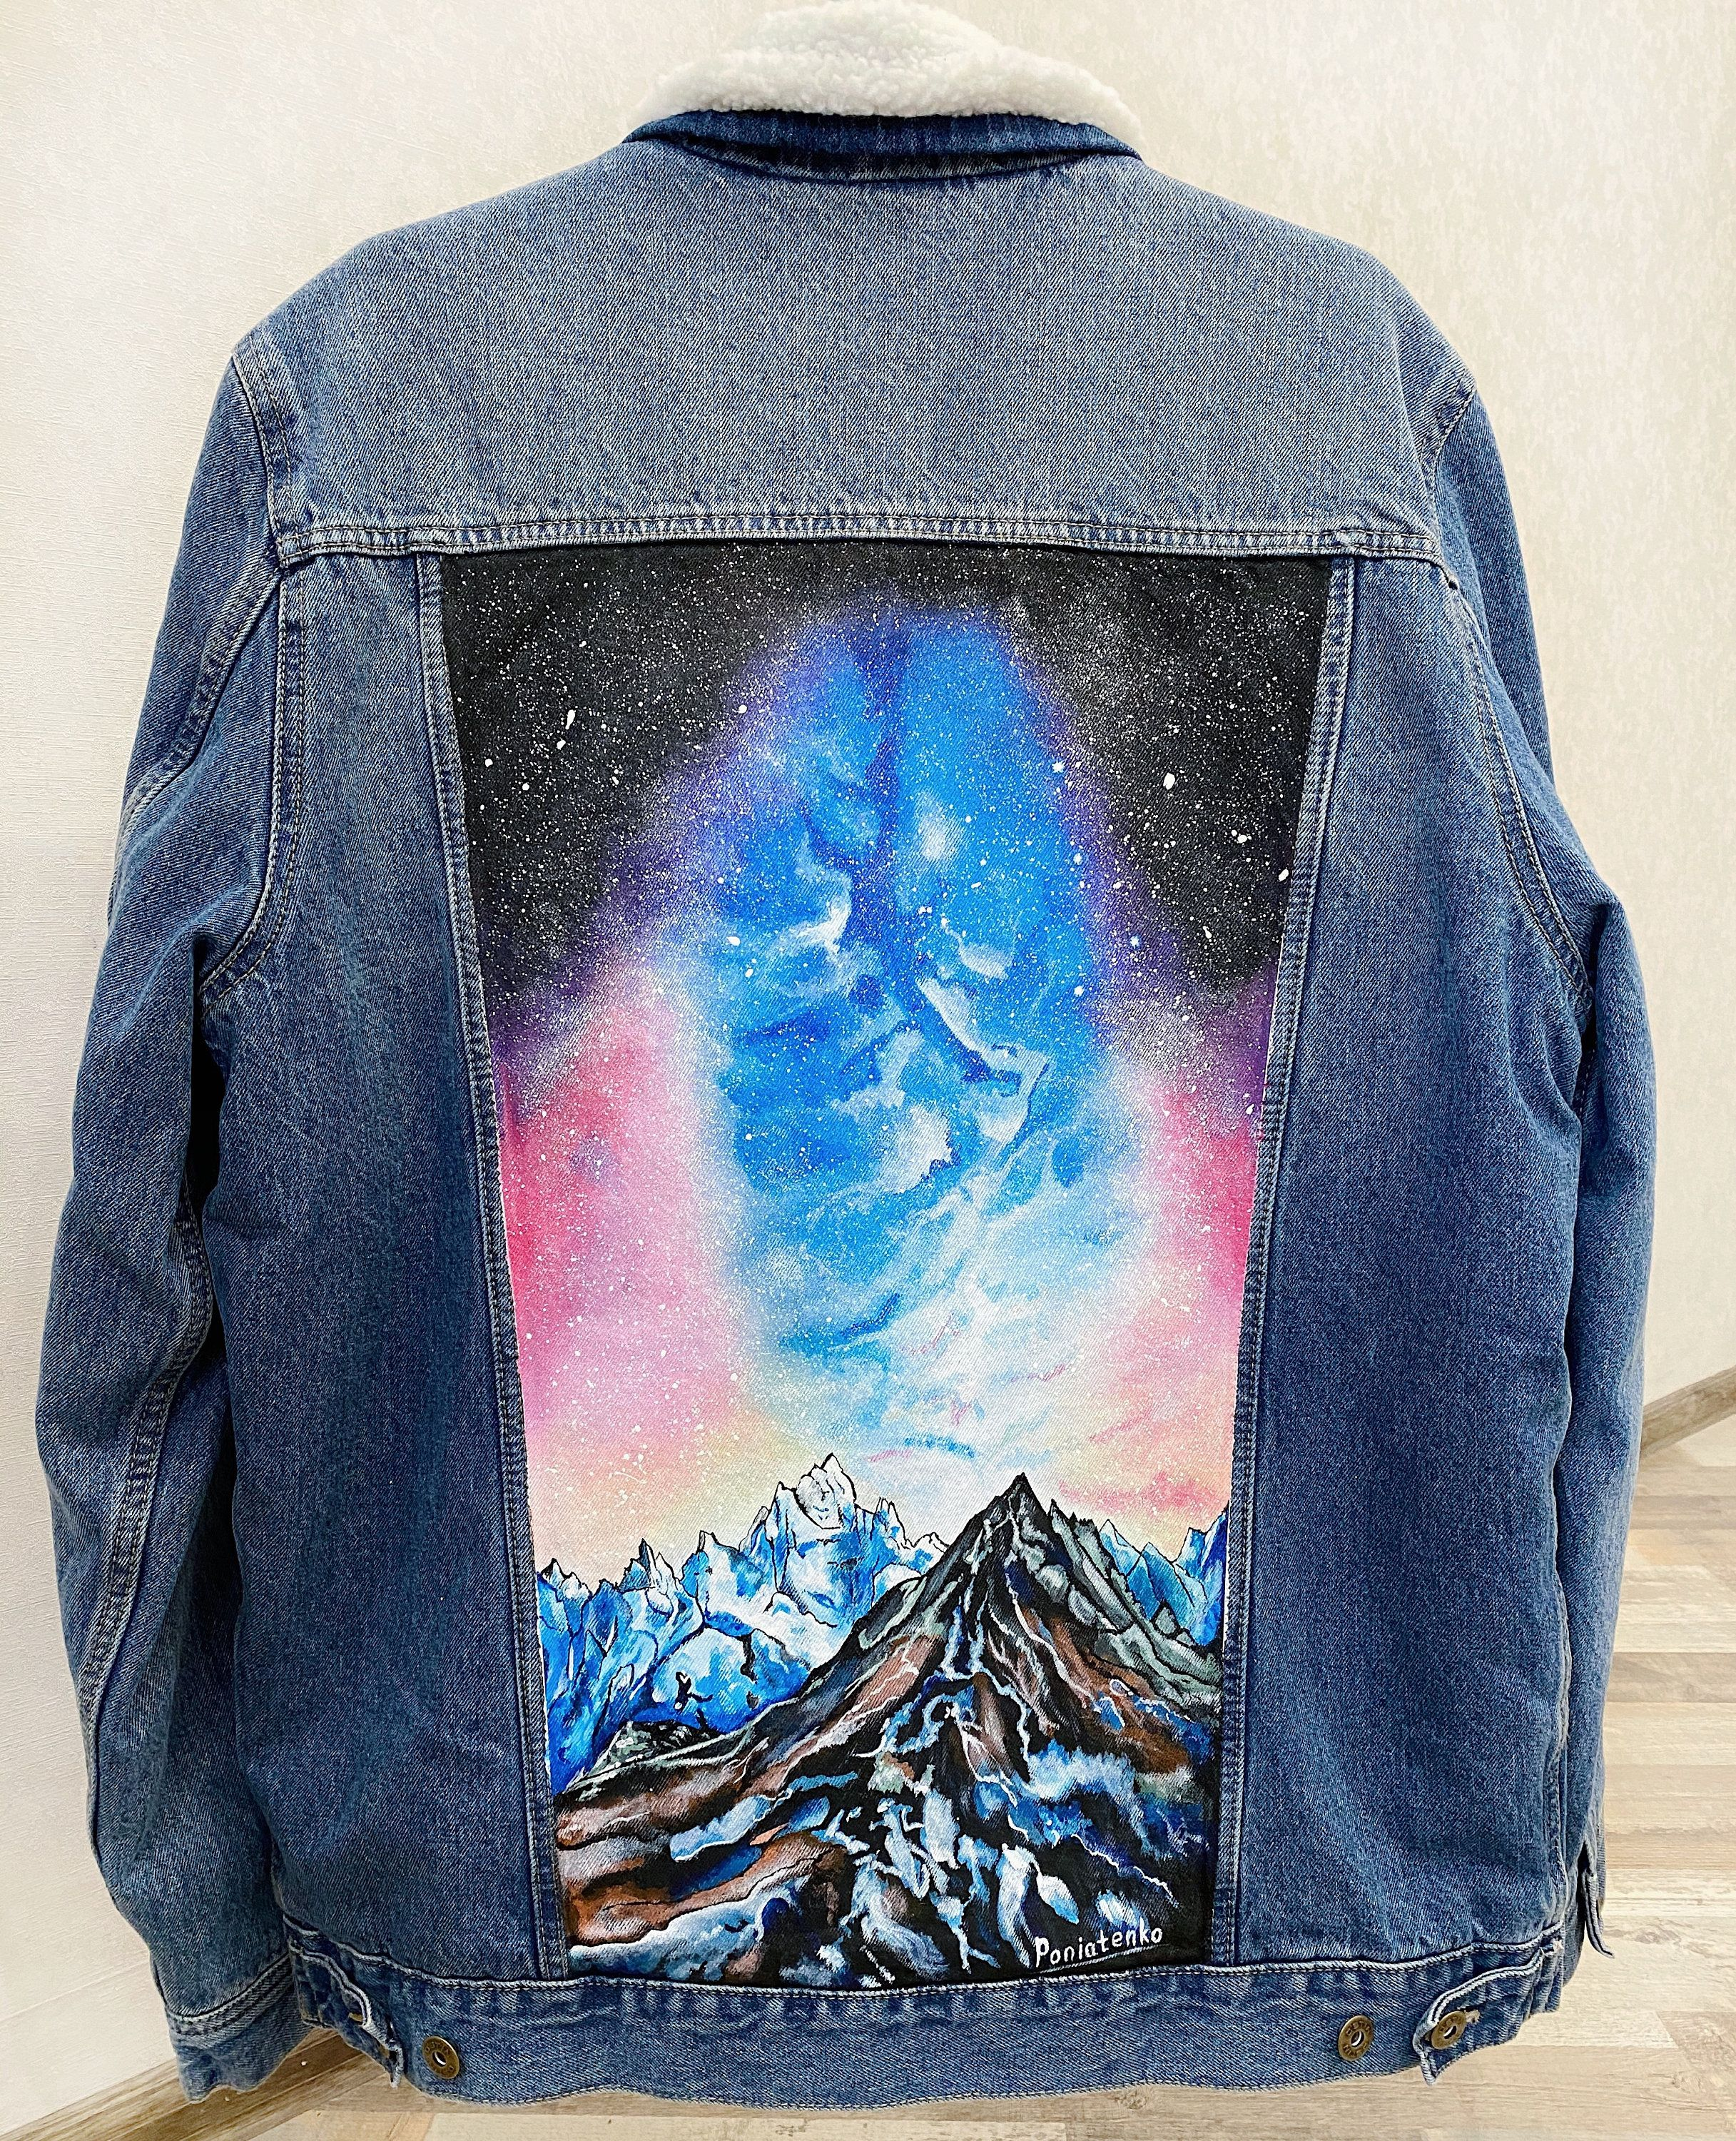 Customized Hand Painted Jean Jacket With Mountains Space Art Etsy Hand Painted Denim Jacket Denim Jacket With Fur Painted Jeans [ 3000 x 2433 Pixel ]